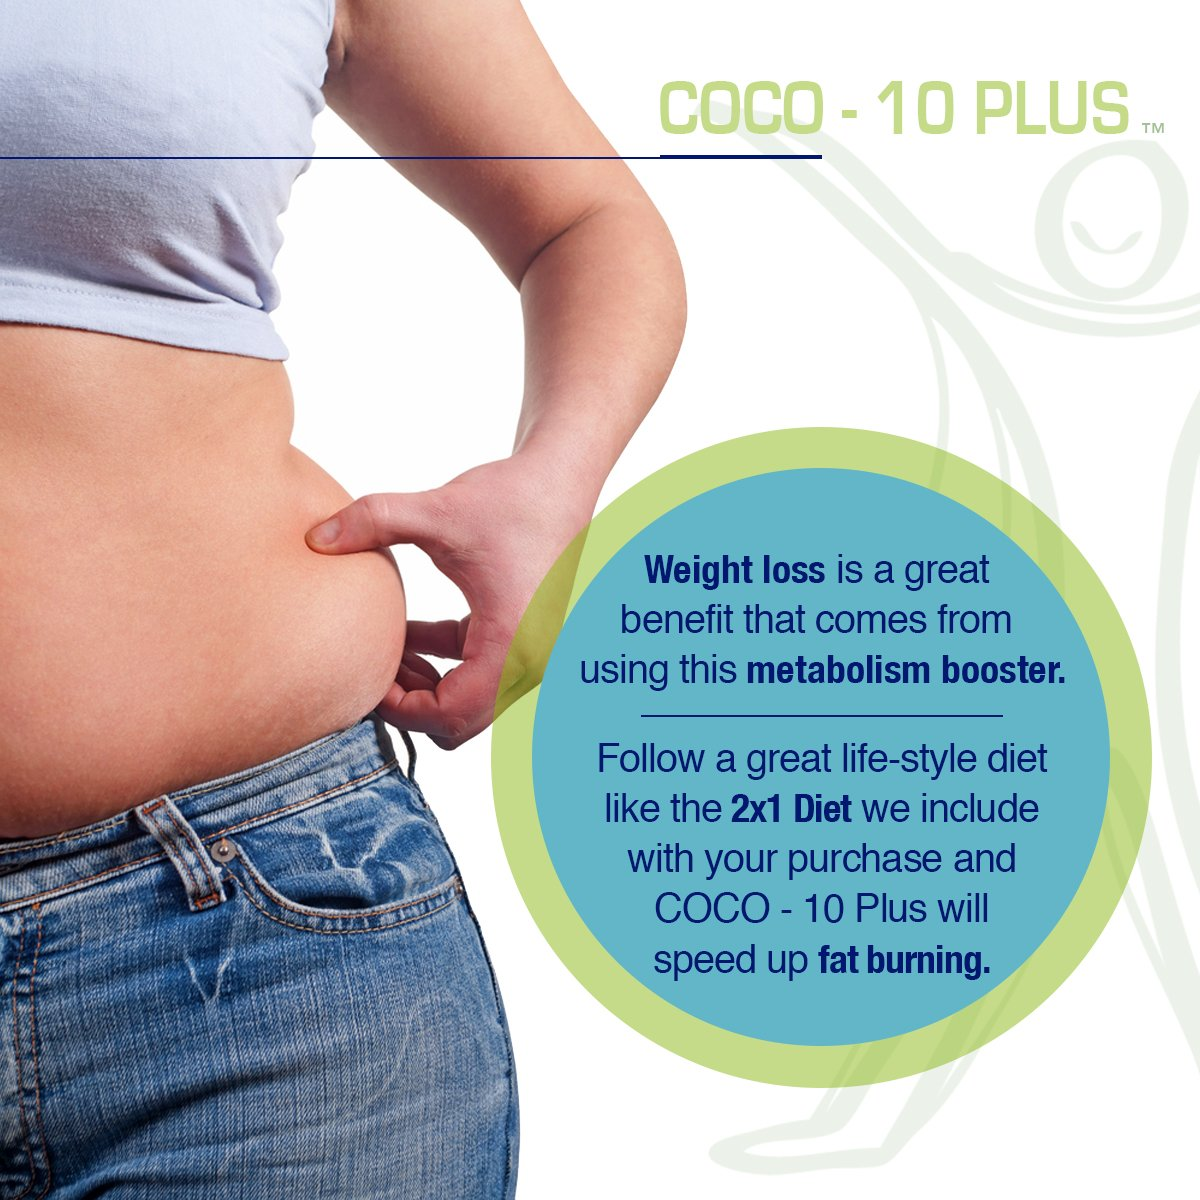 Buy herbal coconut weight loss -  Relaxslim Super Organic Coconut Oil With Coq10 Formulated By Obesity And Metabolism Specialist To Improve Energy Levels And Assist With Weight Loss